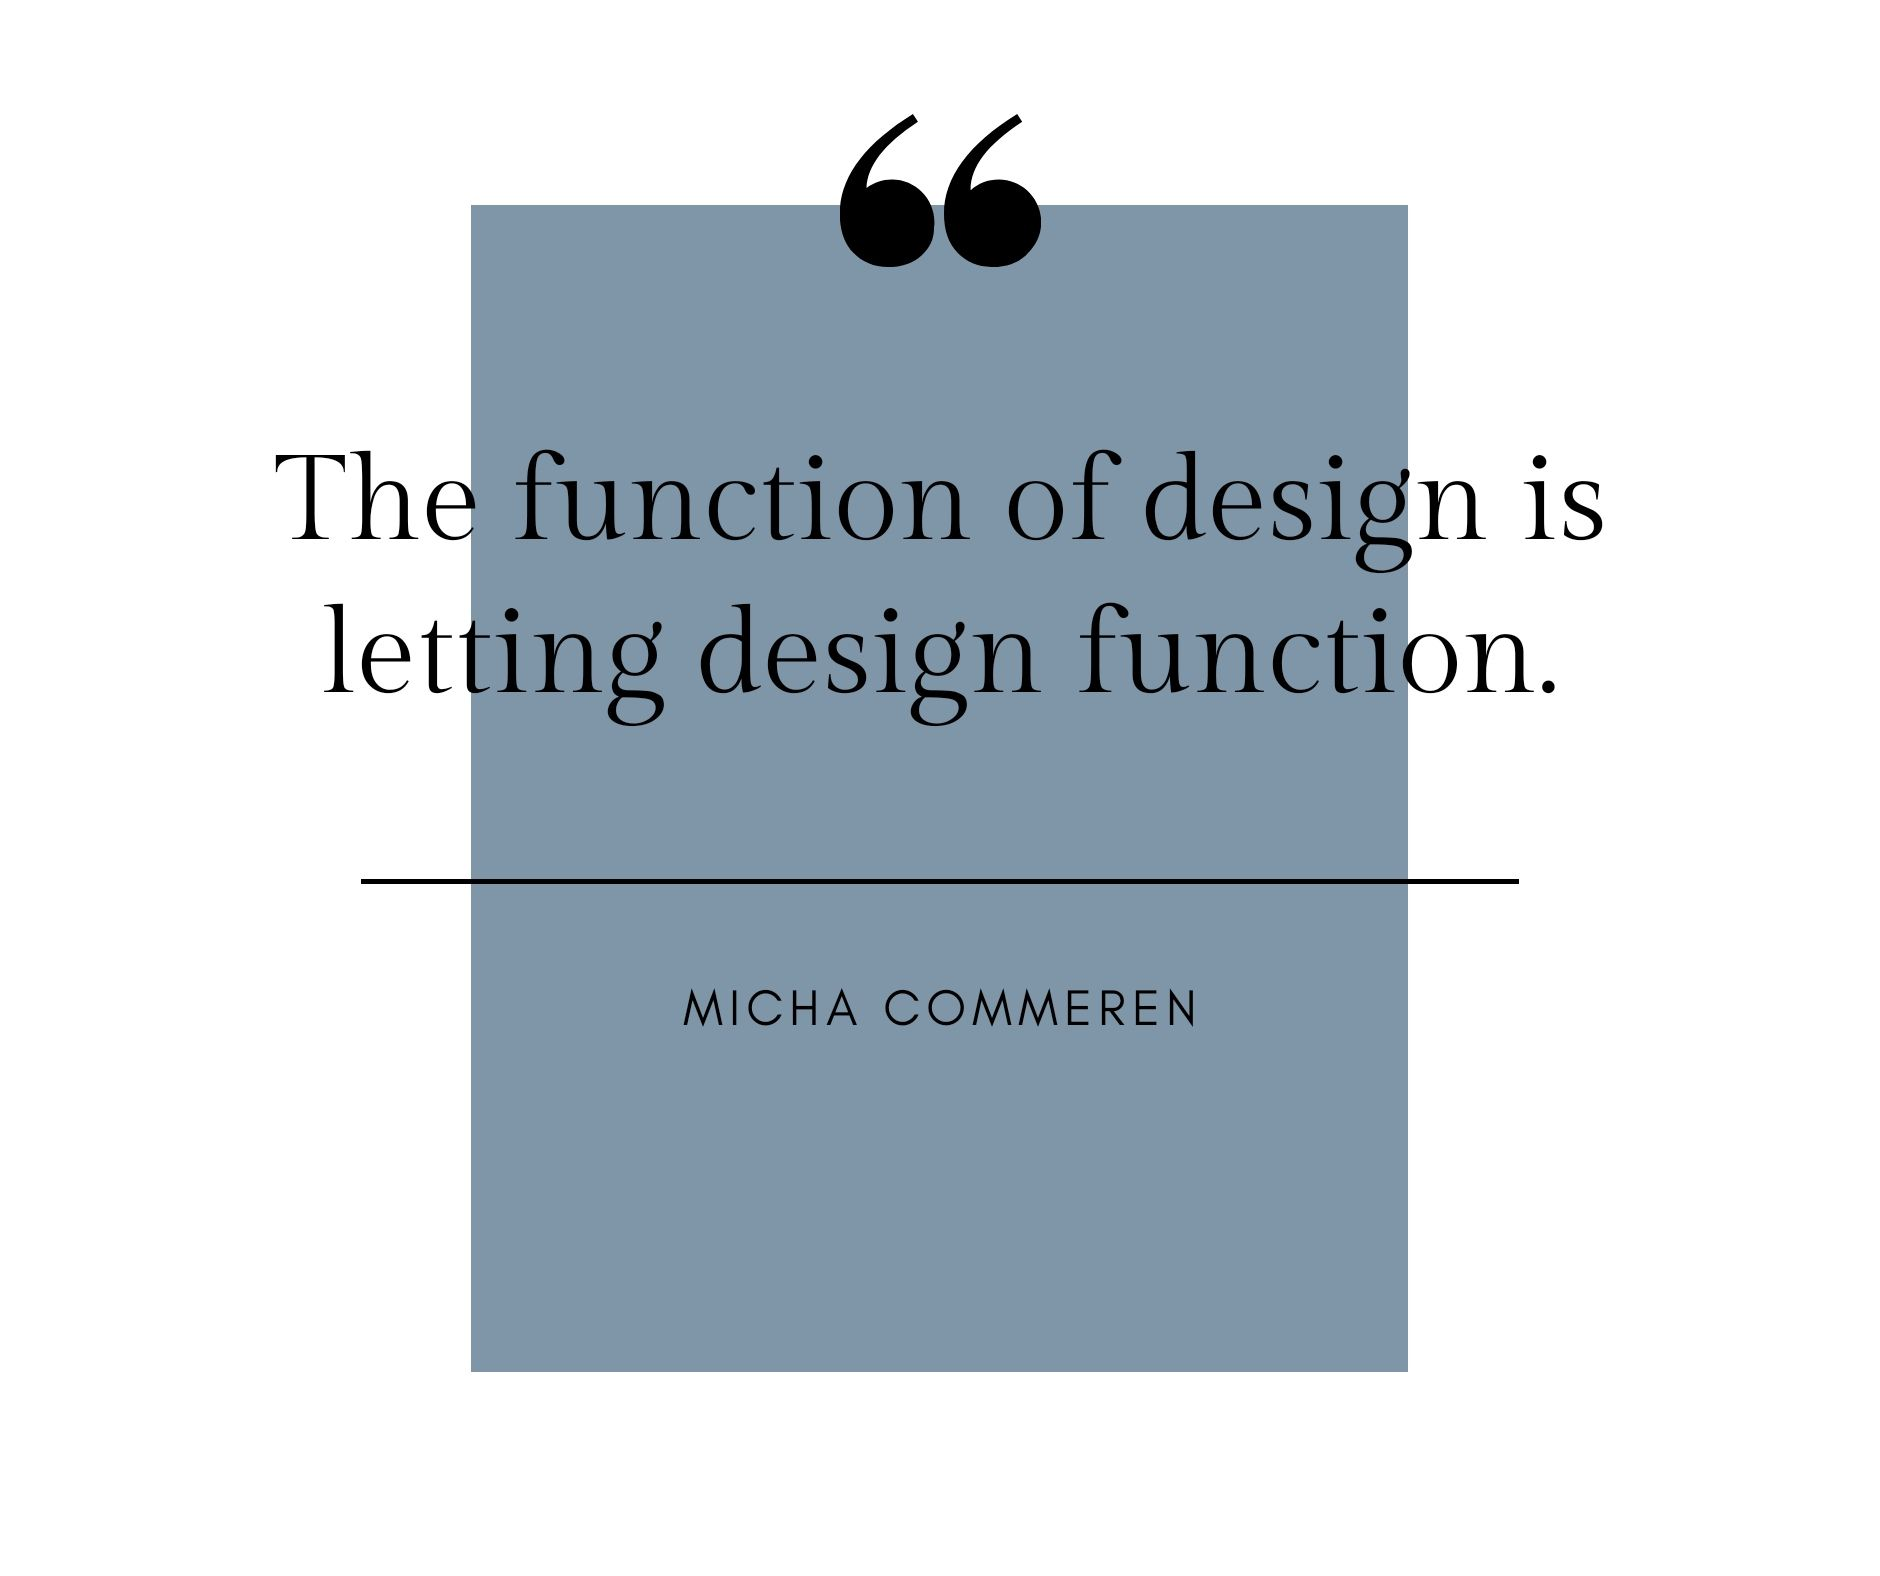 And my primary intention is to create a space that functions perfectly for my clients, no compromise. I meticulously study each space and specific brief to create bespoke functional solutions that are aesthetically pleasing . #interiordesigntips #interiorarchitectureanddesign #interiordesigner #residentialinteriors #moderninteriors #homeinterioruk #luxuryinteriordesign #luxeathome #chelseainteriordesigner #fulhaminteriordesigner #interiorswithpersonality #jenesaisquoilondon